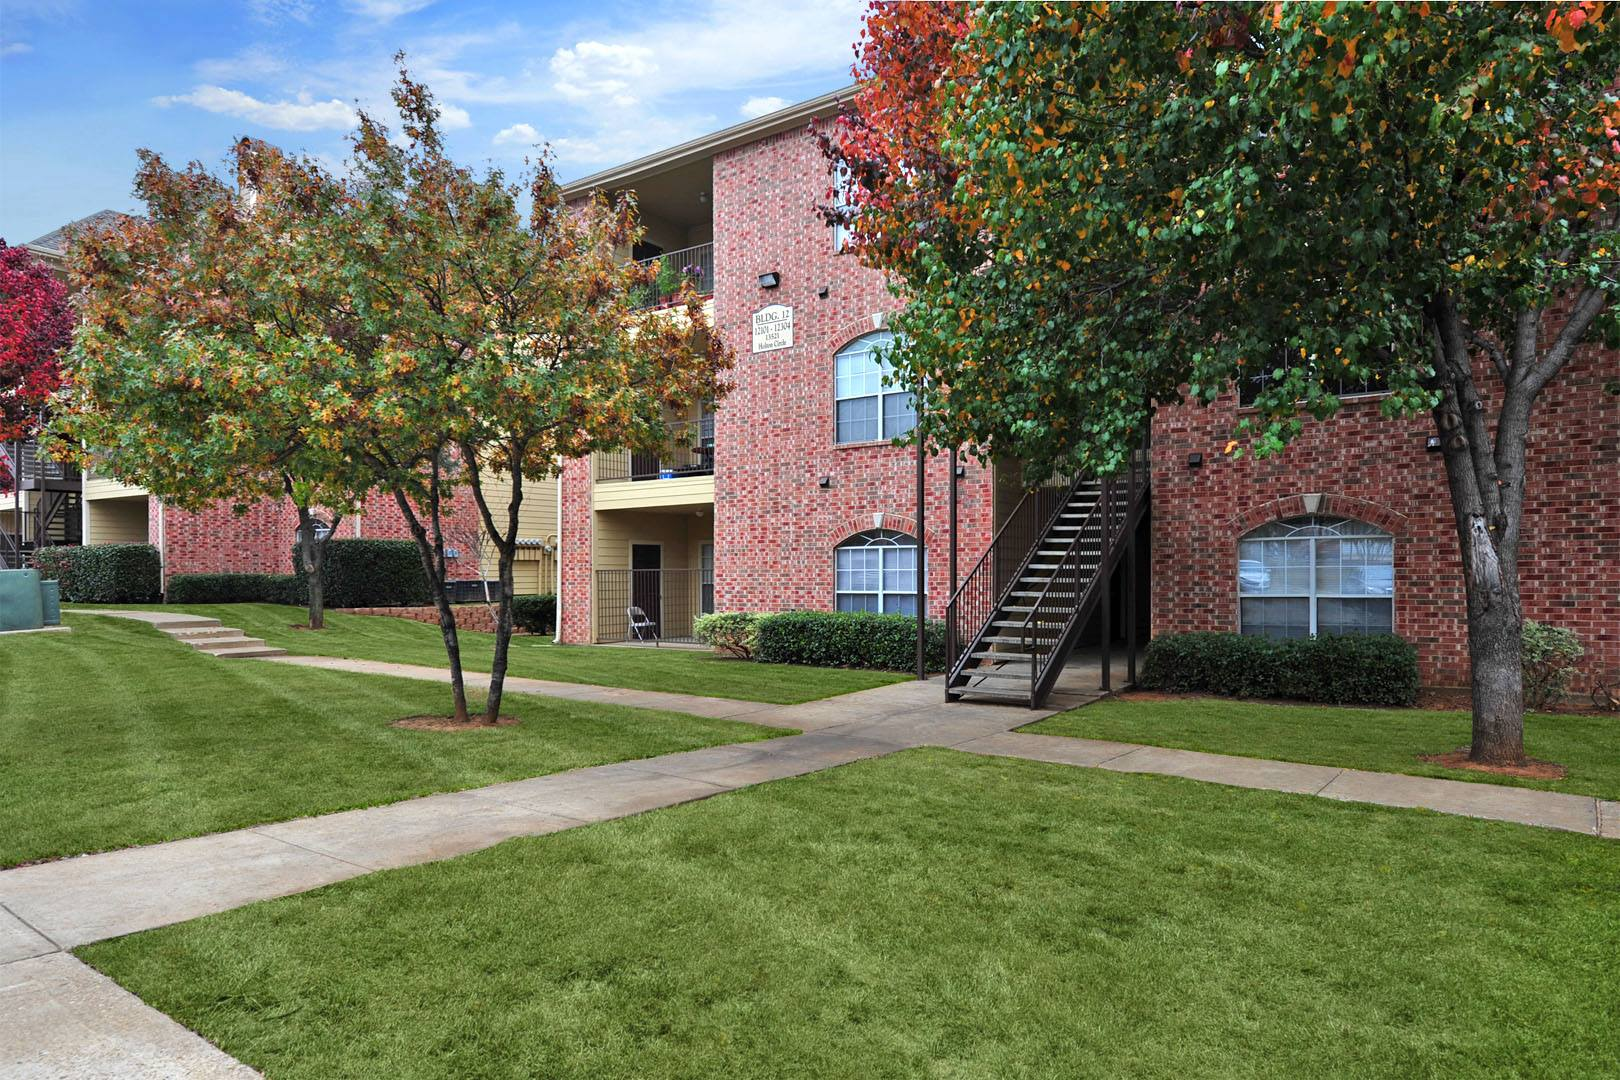 Lush Landscaping at Station 3700 Apartment Homes in Euless, Texas